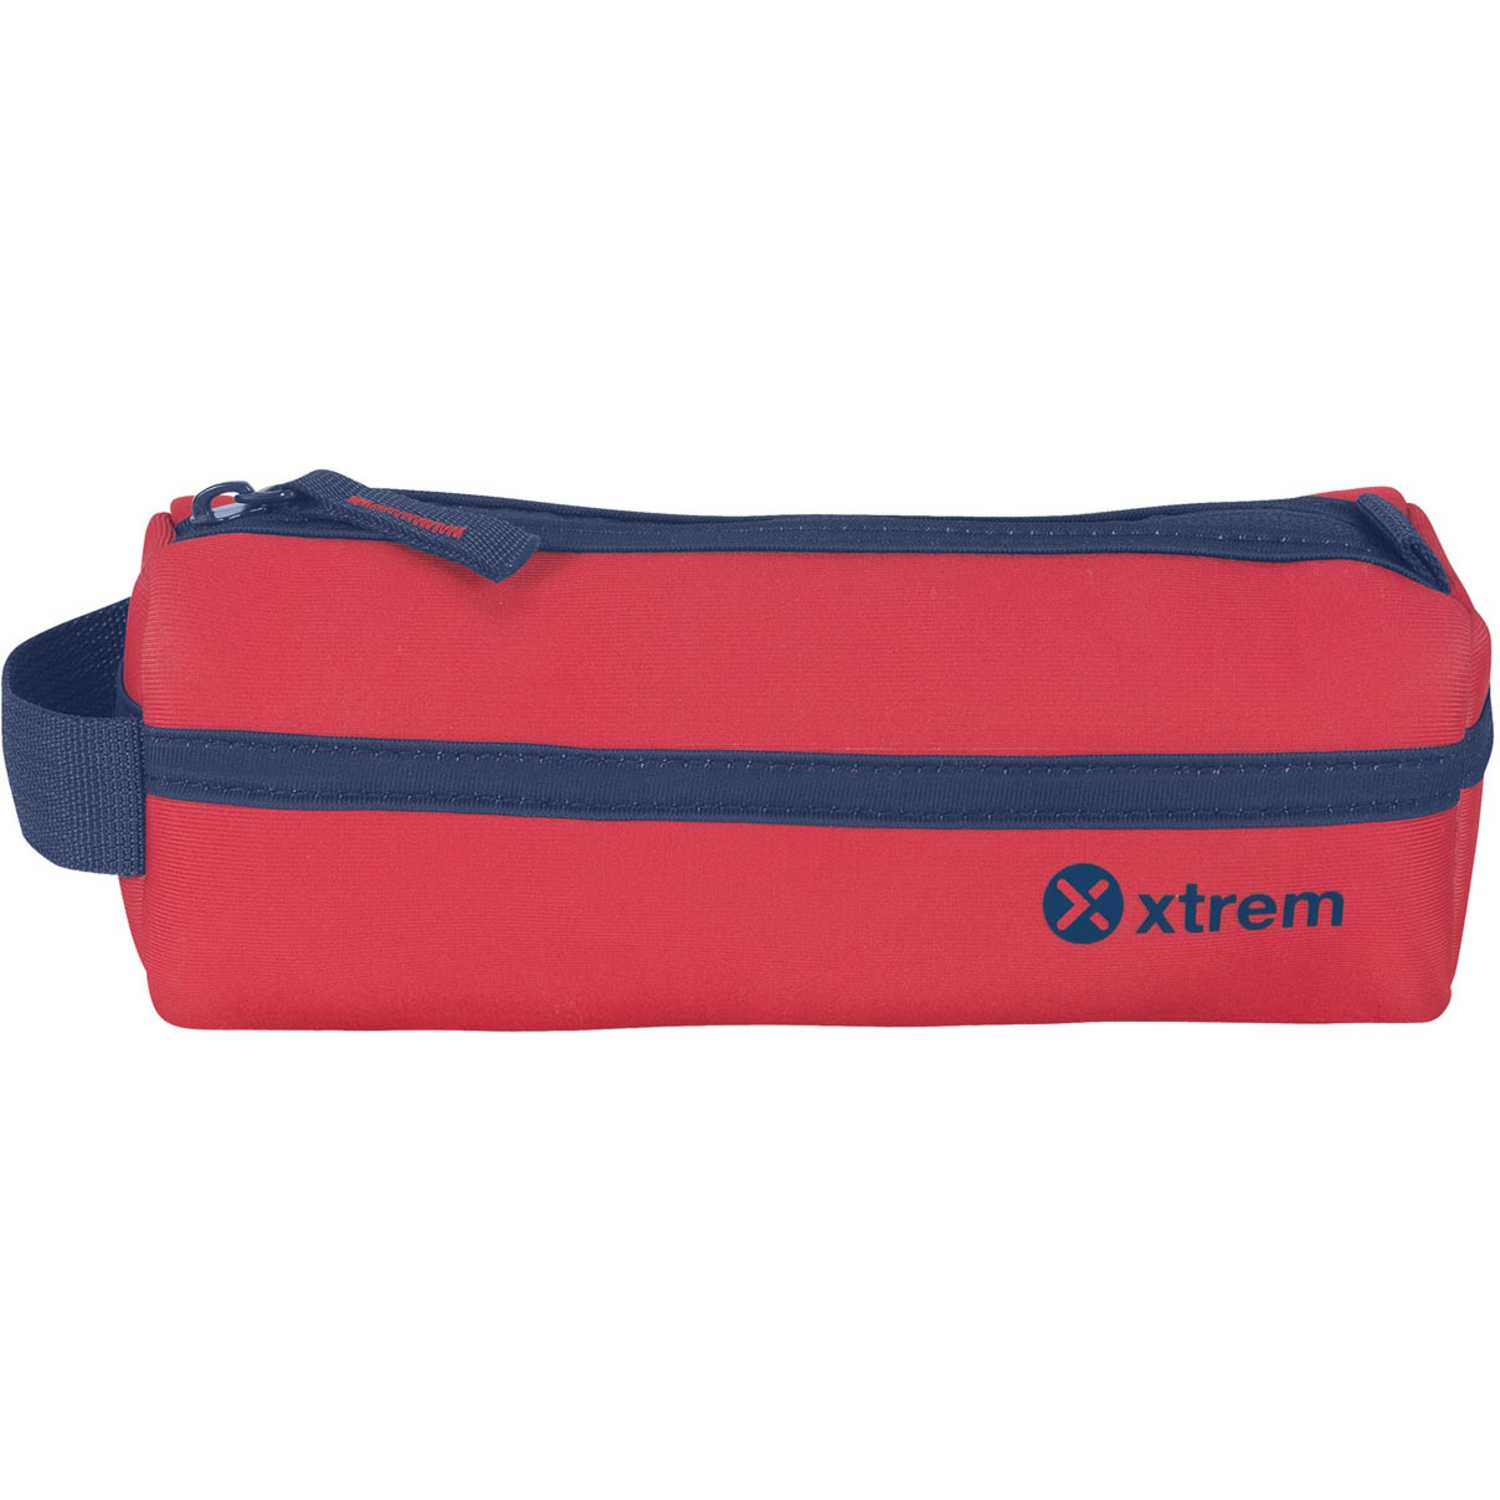 Cartuchera de Niño Xtrem Rojo / azul pencil box red/navy school 842